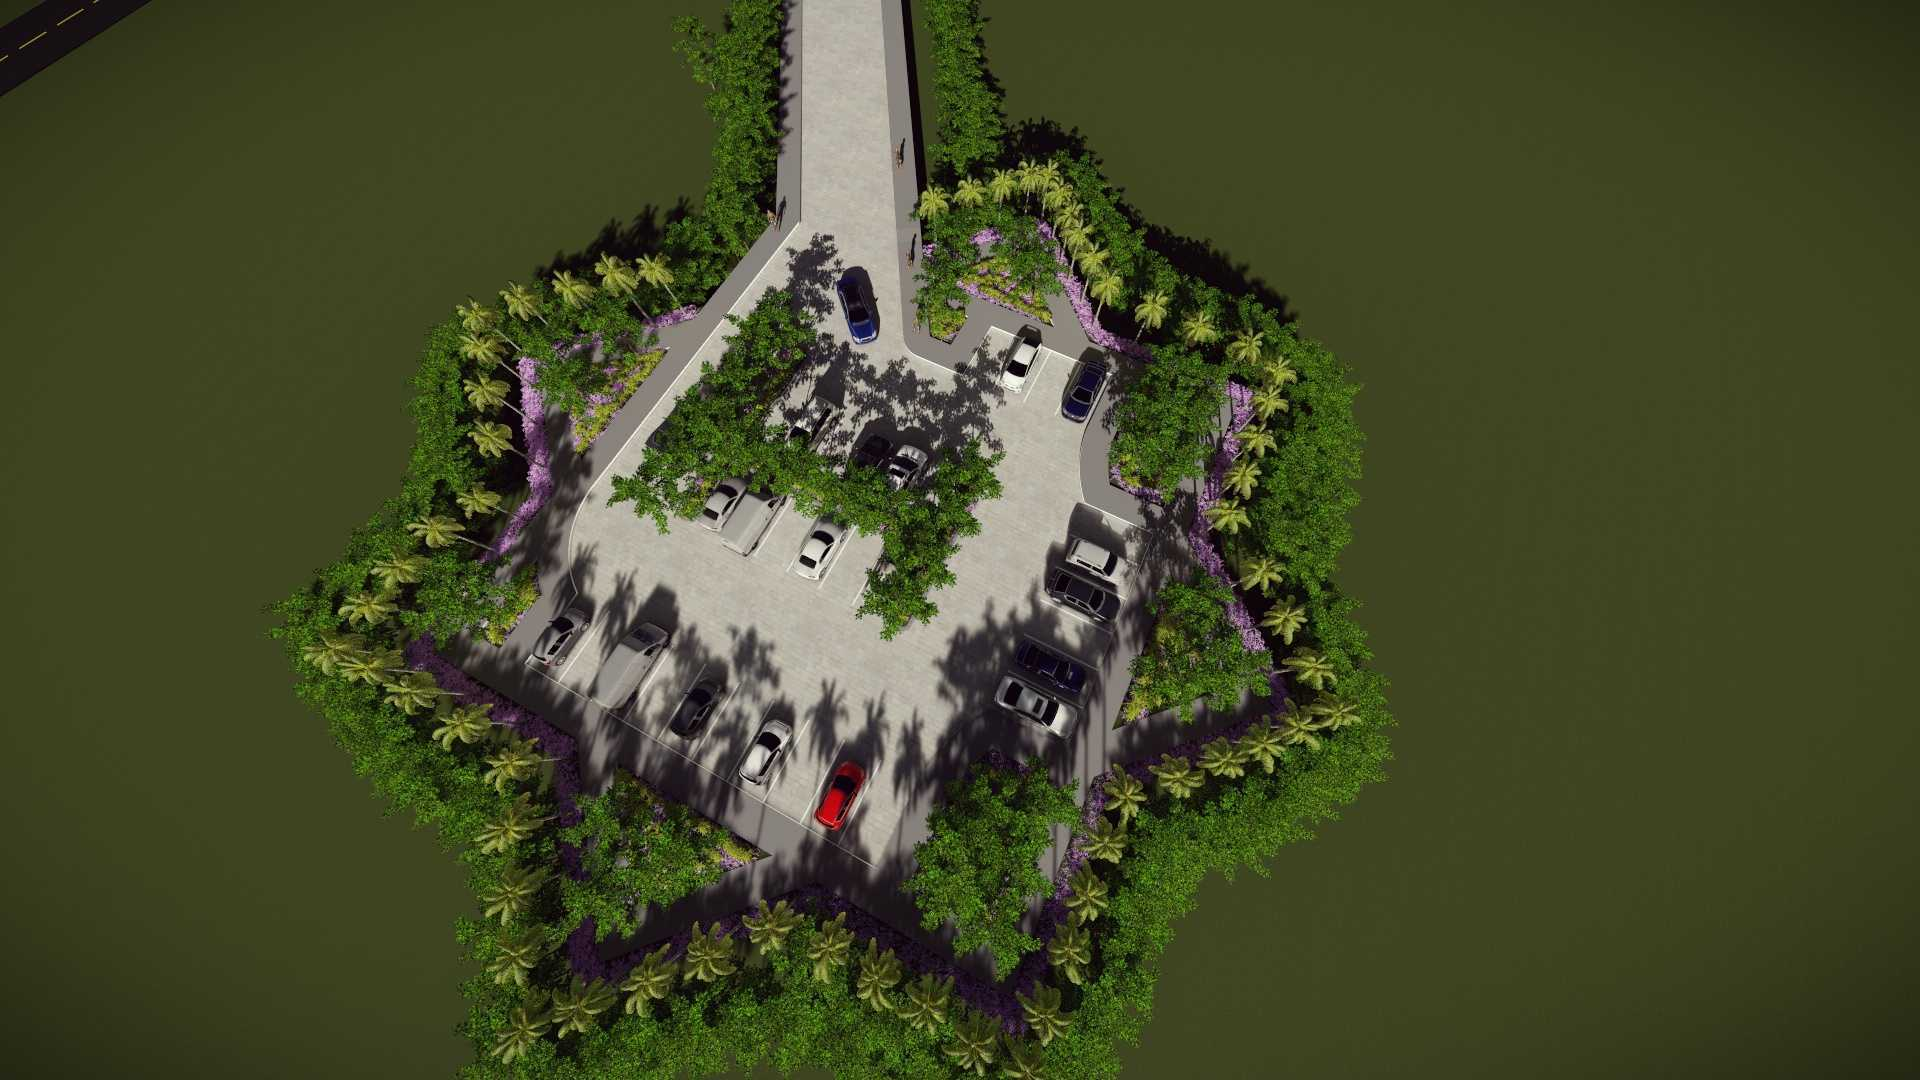 Mannor Architect Maelang Parking Area Gorontalo, Indonesia Gorontalo, Indonesia Bird Eye View   40750